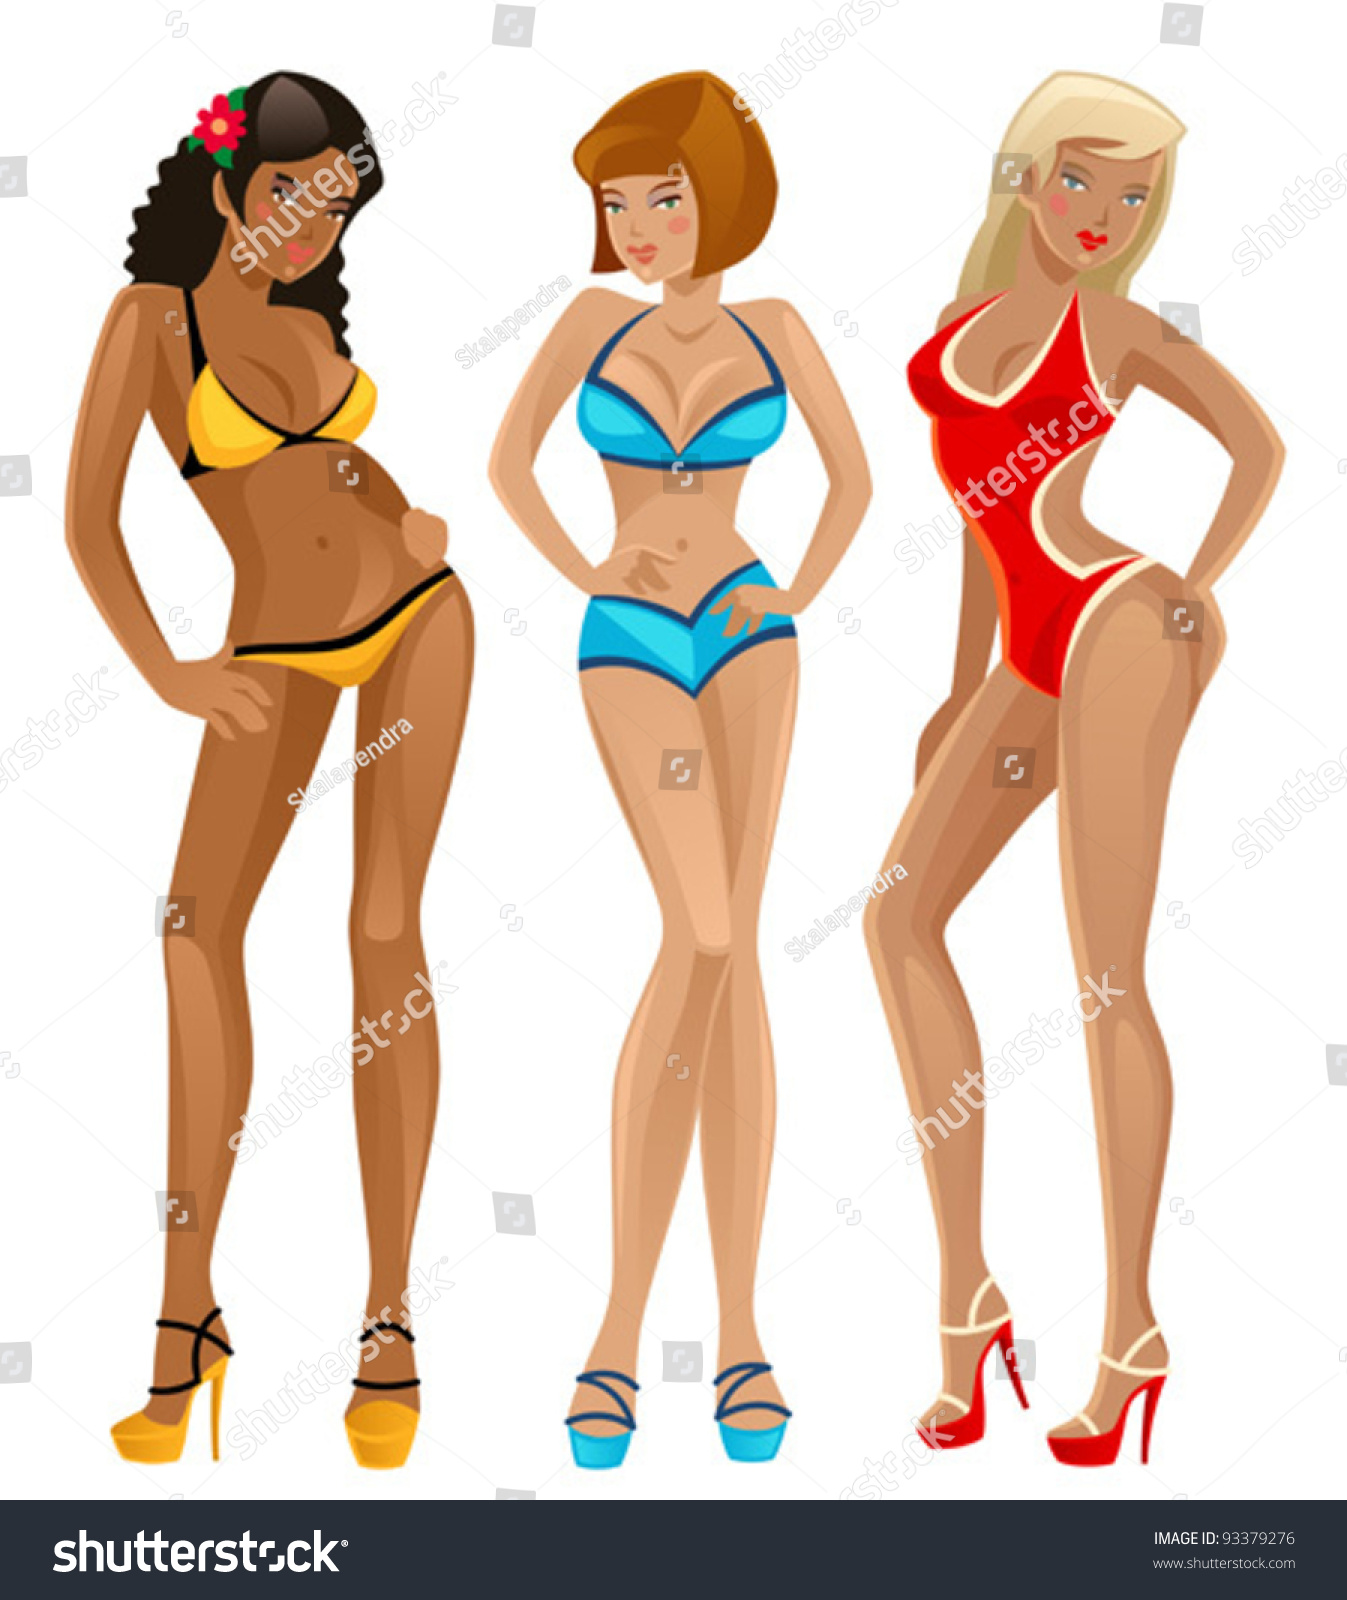 Cartoon bikini babes